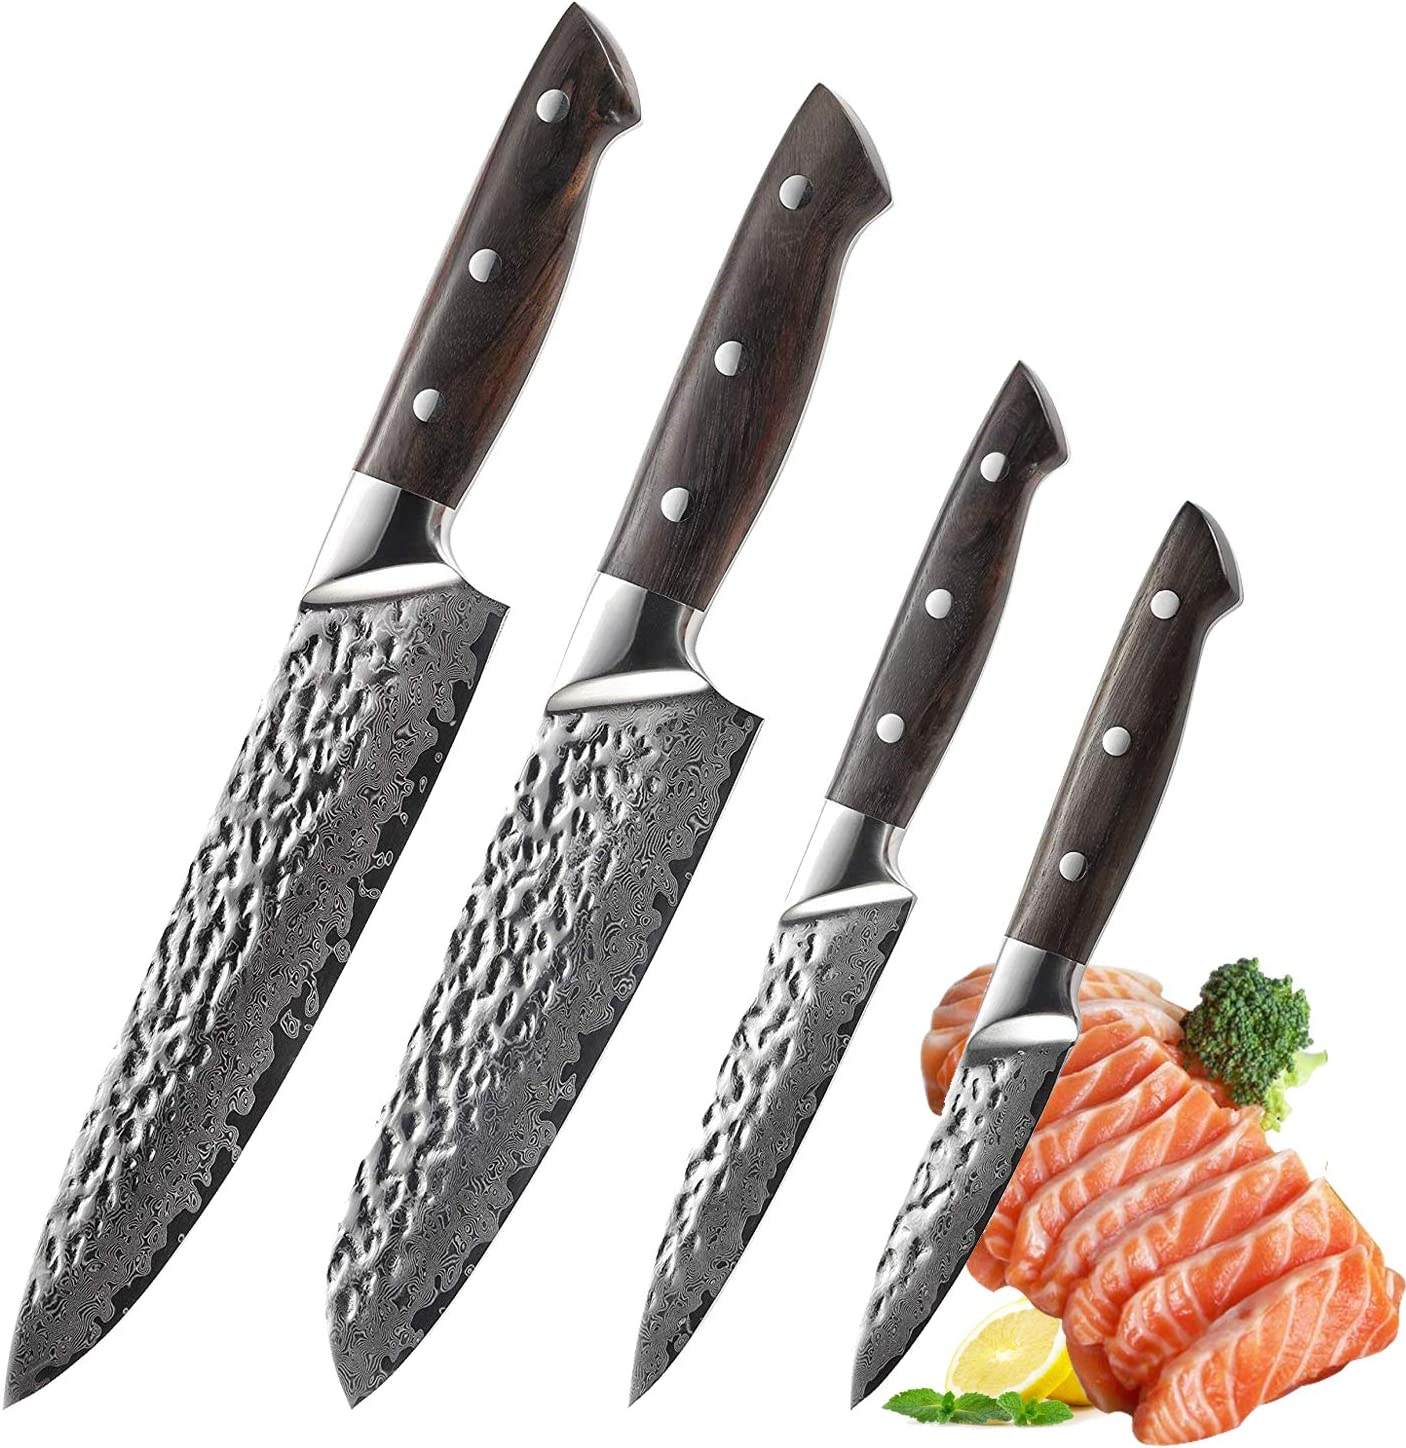 Japanese Knife Set Damascus Kitchen Knife Set 4pcs, Chef Santoku Utility  Paring Cutlery Knives, VG10 Stainless Steel Rosewood Handle (4pcs)